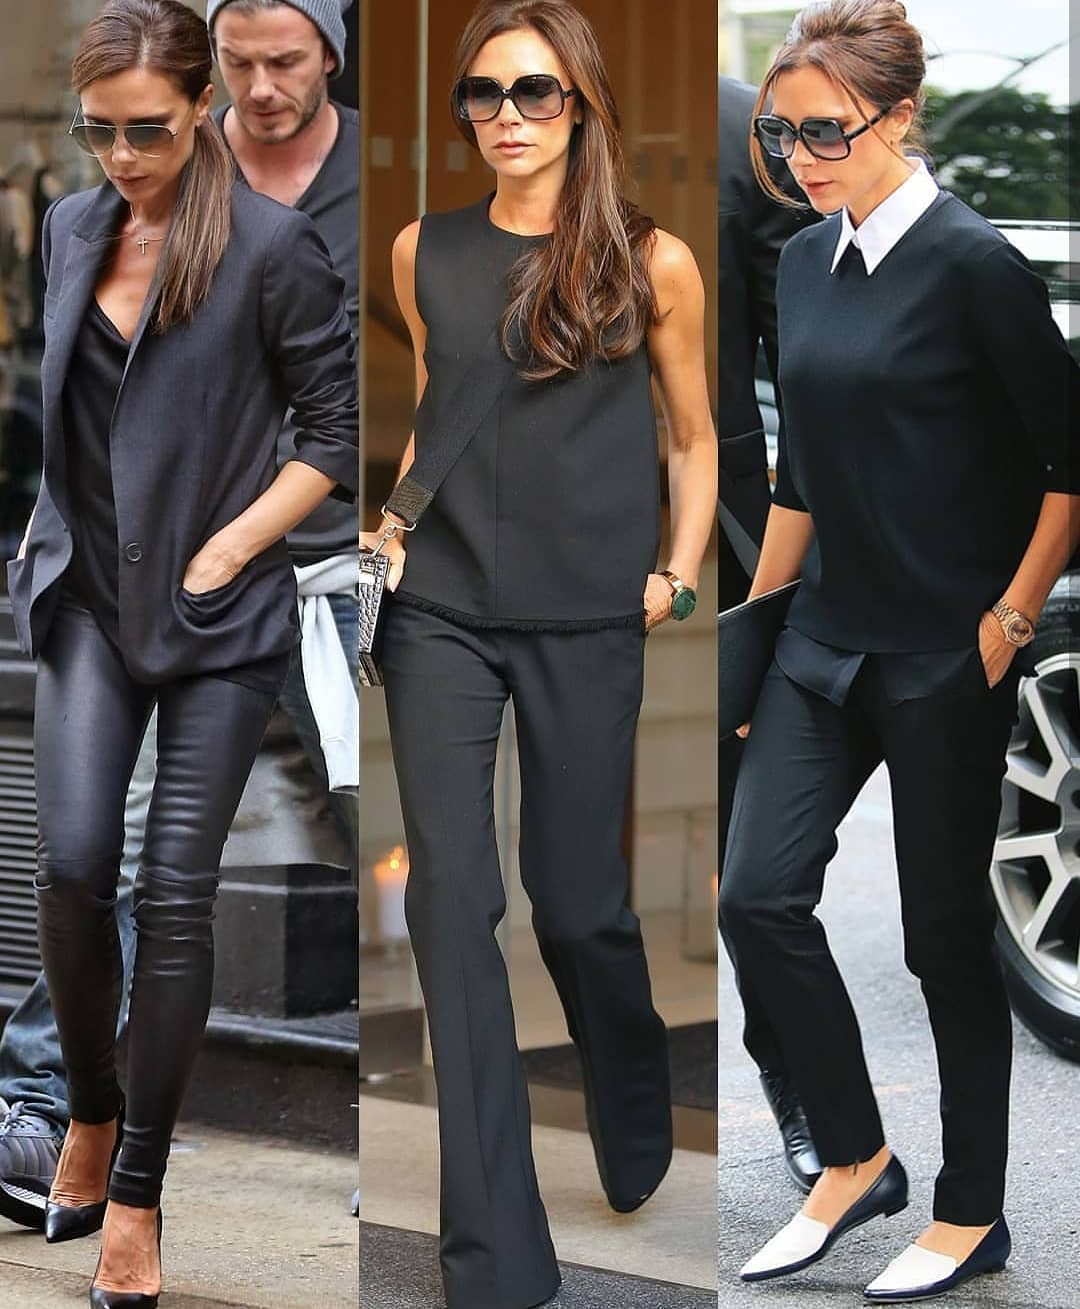 Victoria Beckham Wearing All Black Outfit Ideas 2019